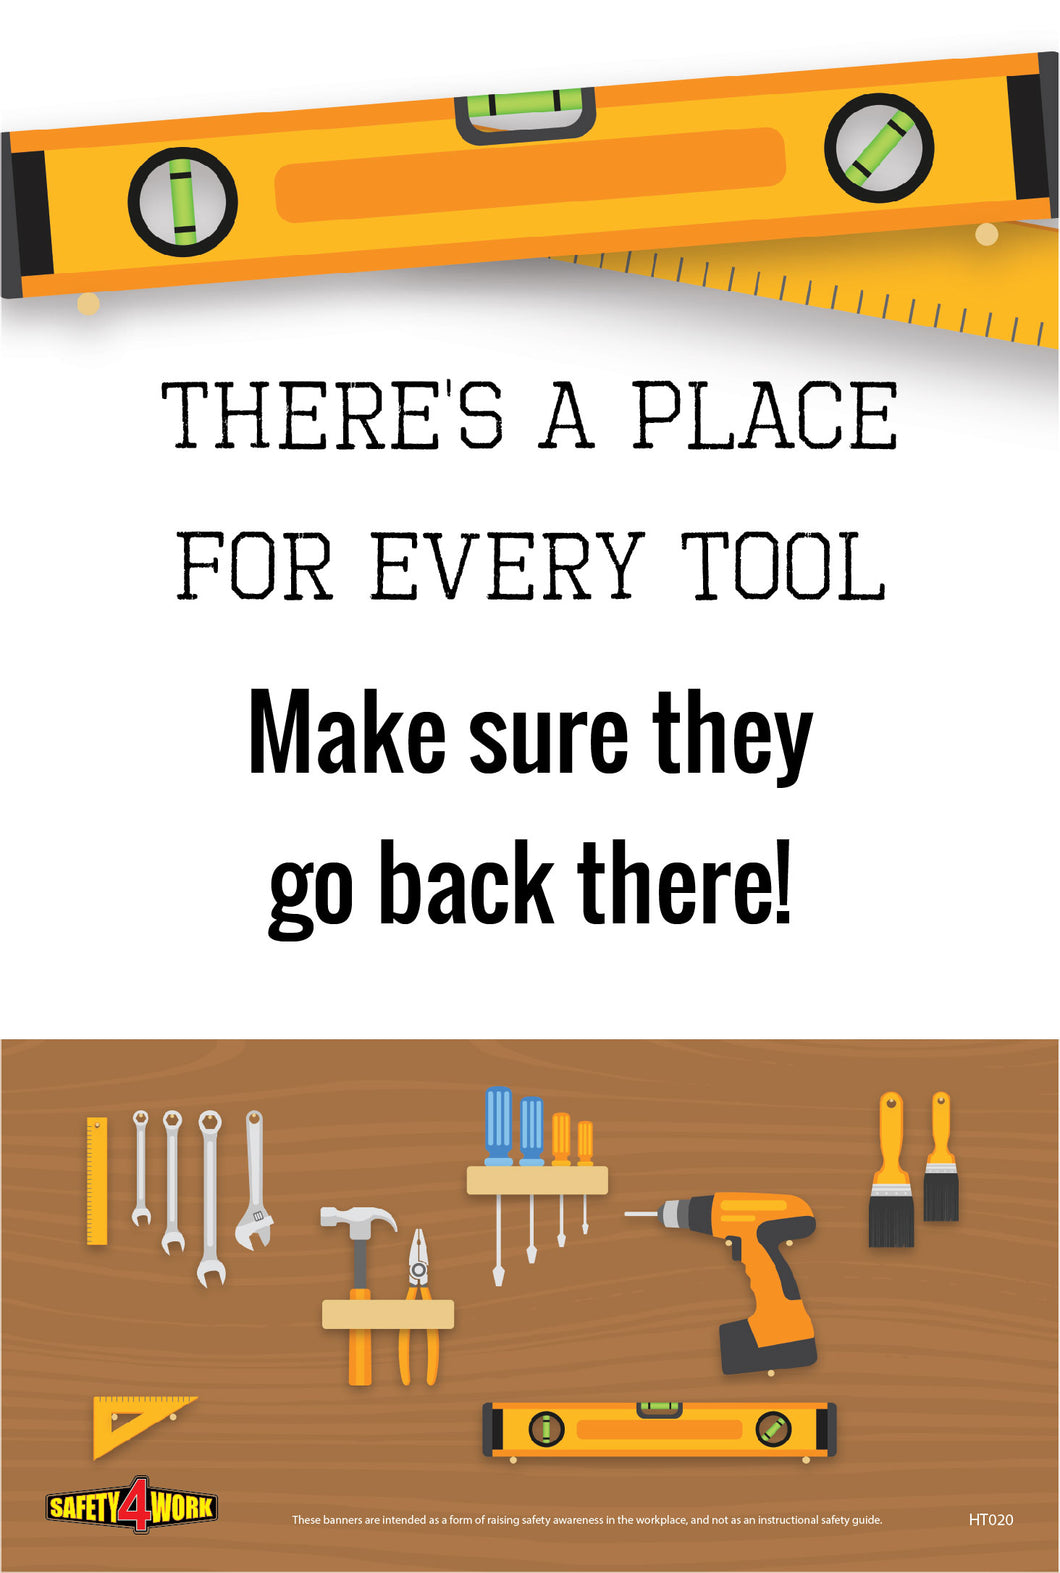 HT020- Handtools Workplace Safety Poster